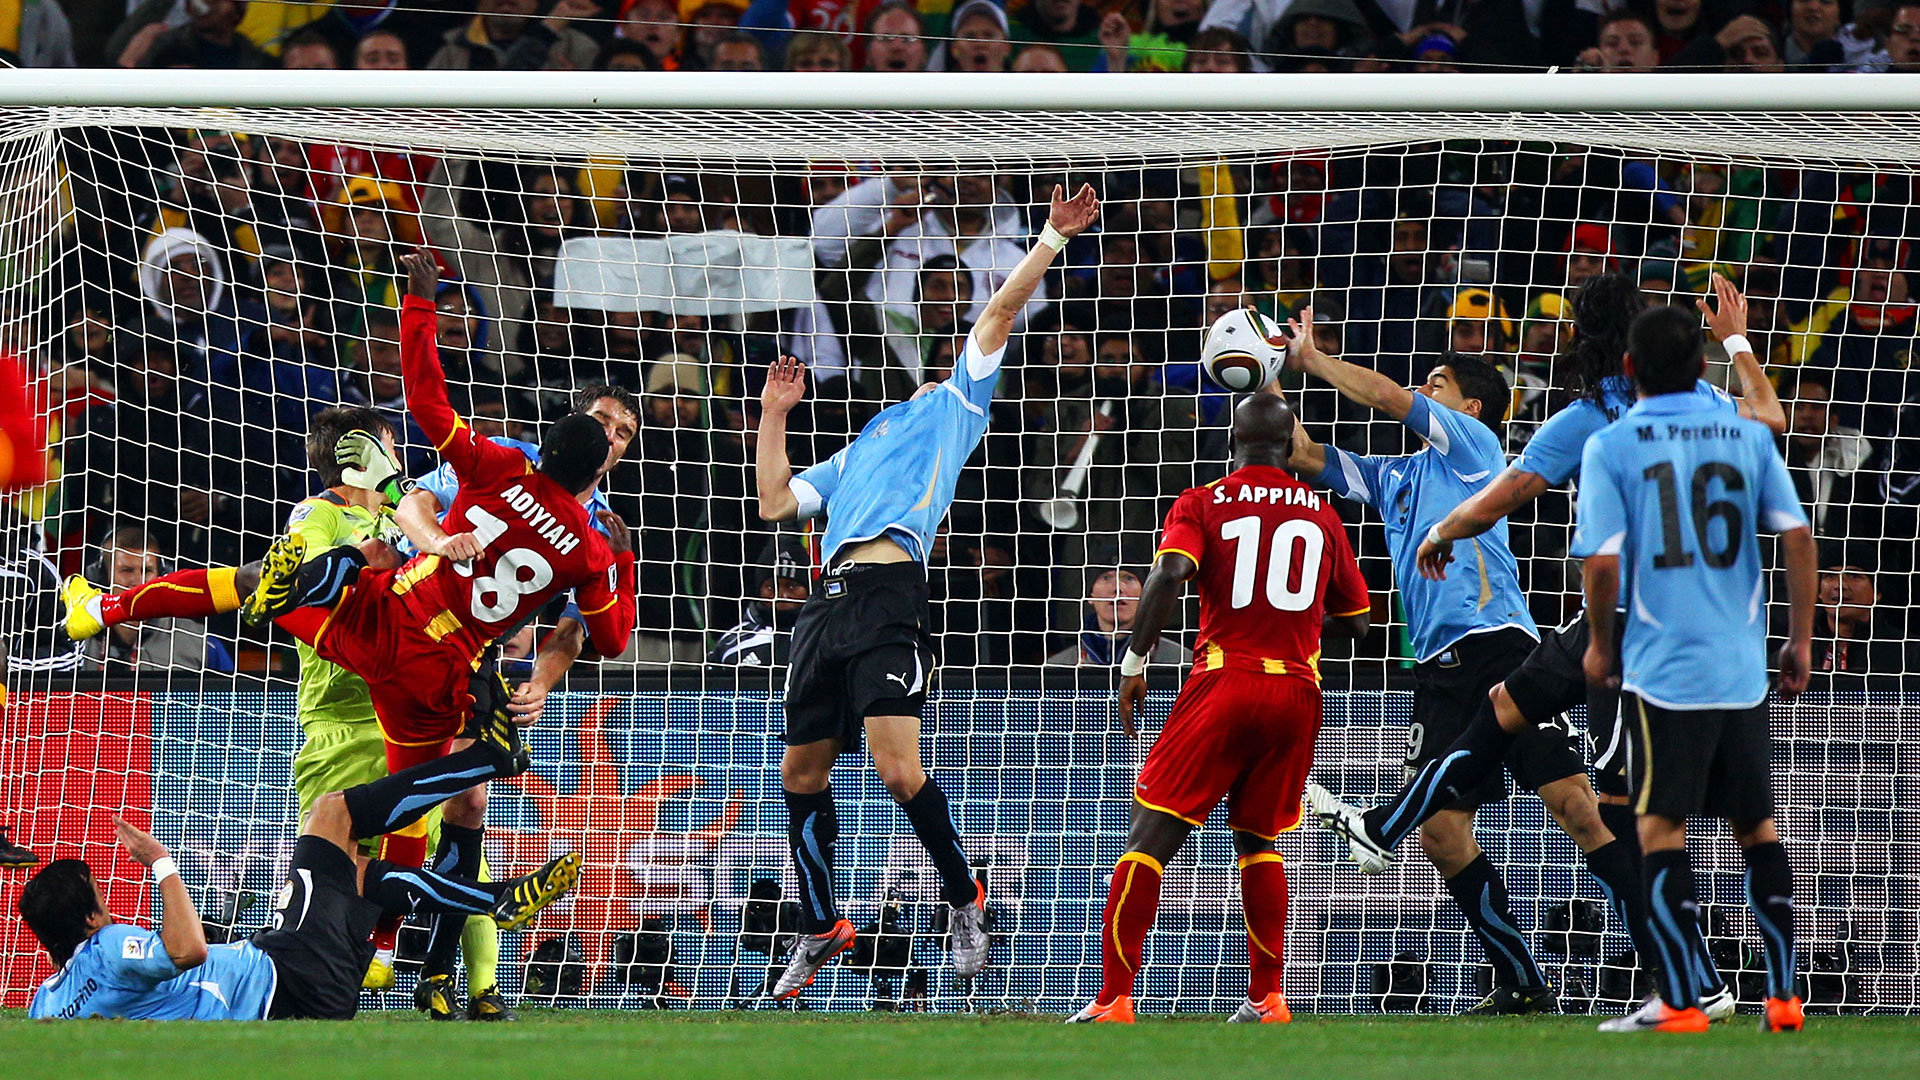 Fan View: Ghana would have reached 2010 World Cup final if they defeated Uruguay